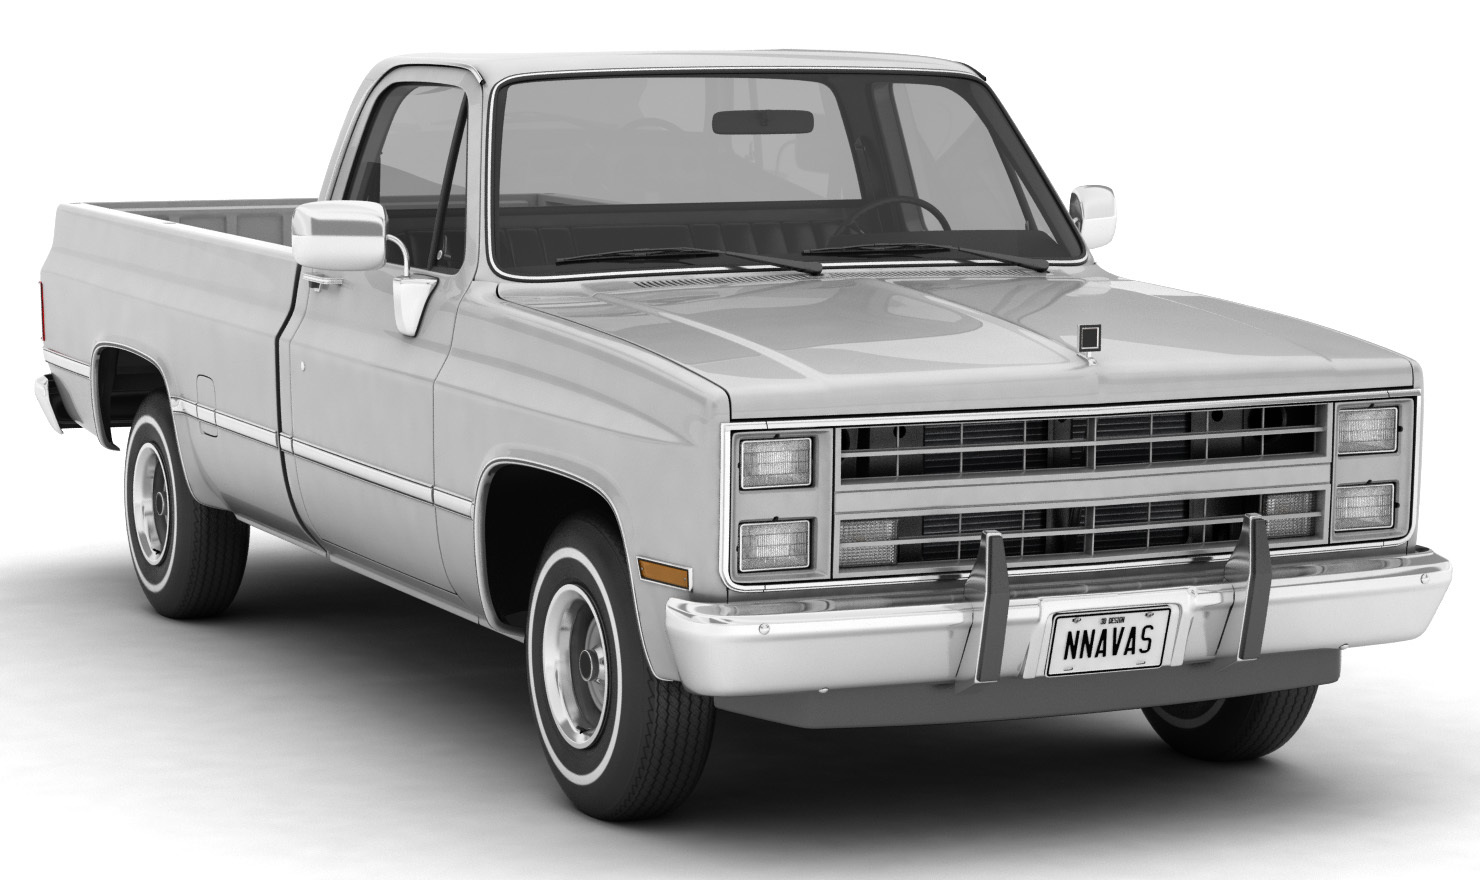 GENERIC PICKUP TRUCK 2 - Extended License